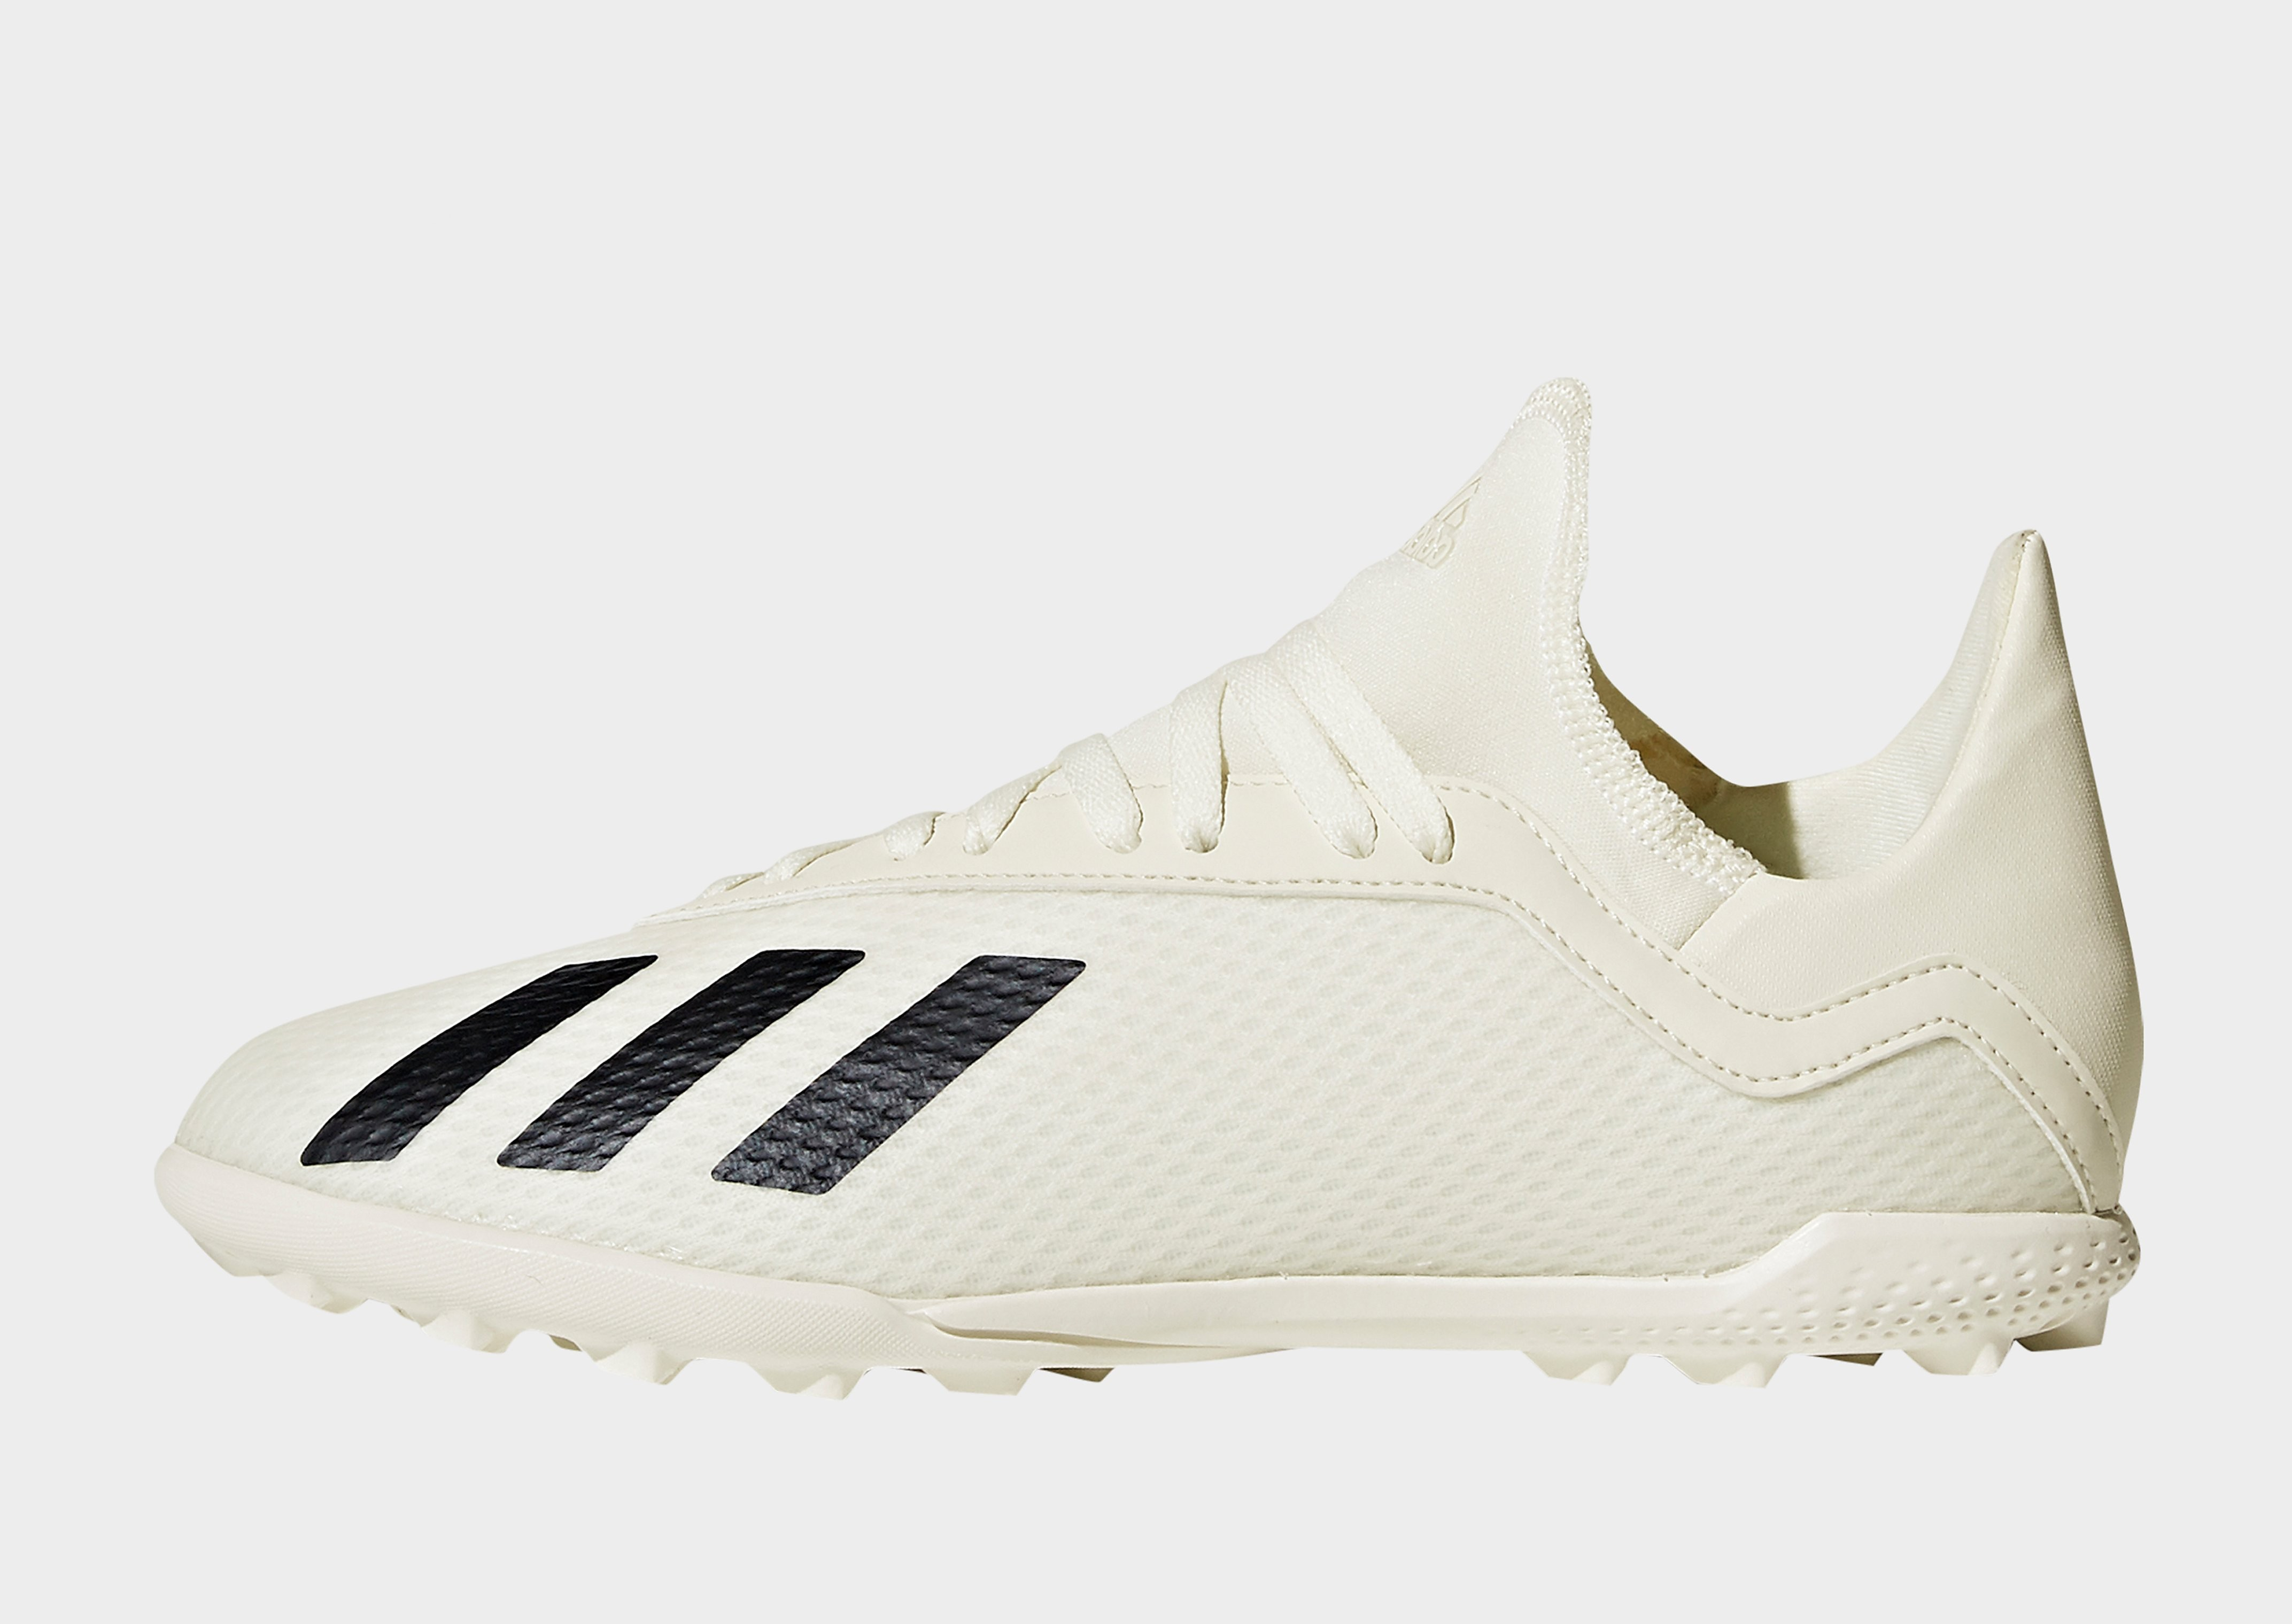 adidas Spectral Mode X 18.3 TF Junior - Off-White - Kind